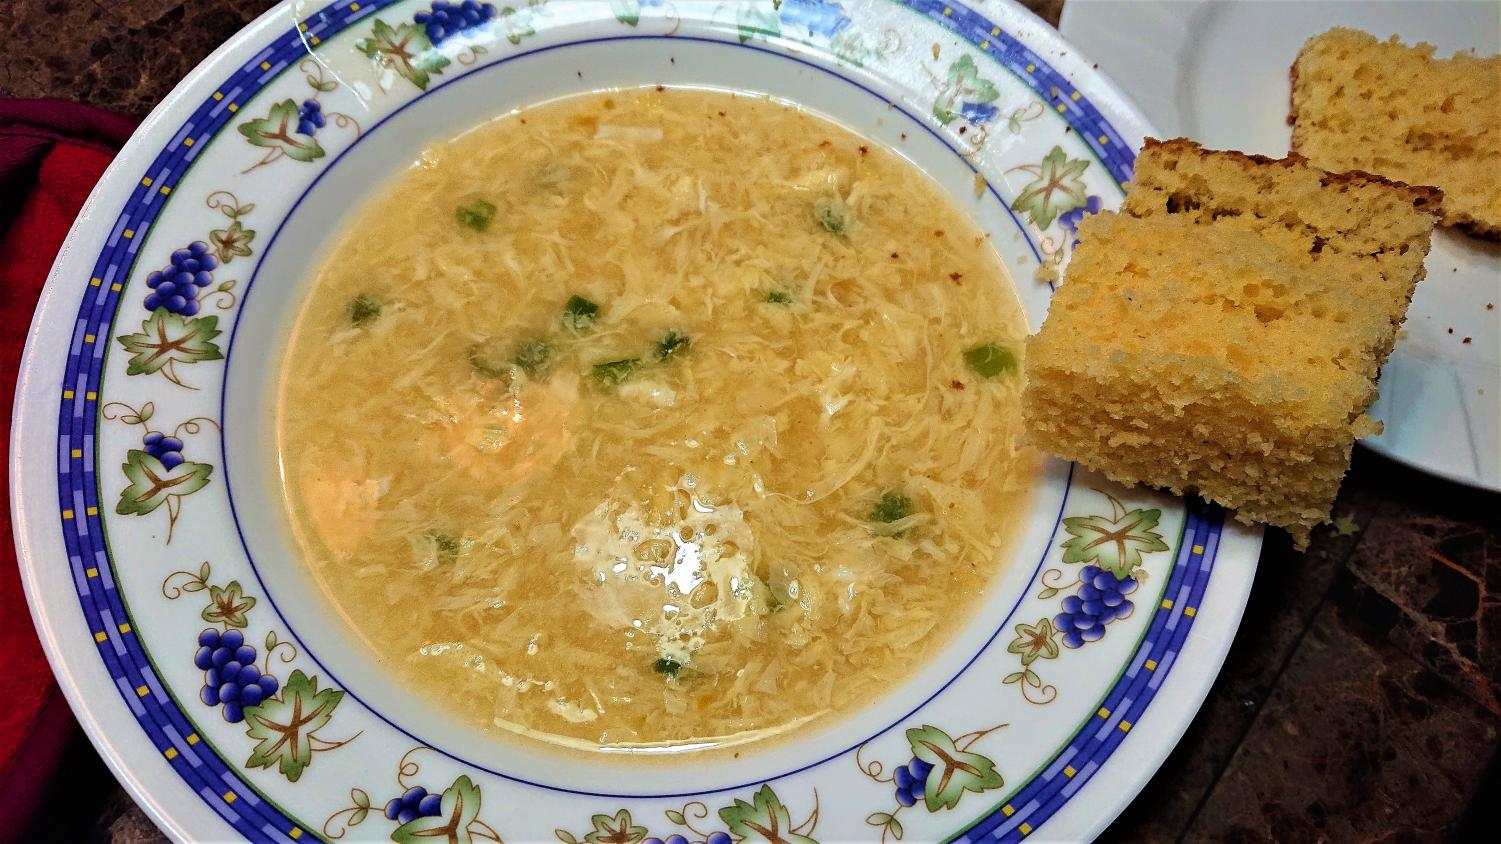 Warm bowl of egg drop soup with a side of cornbread.